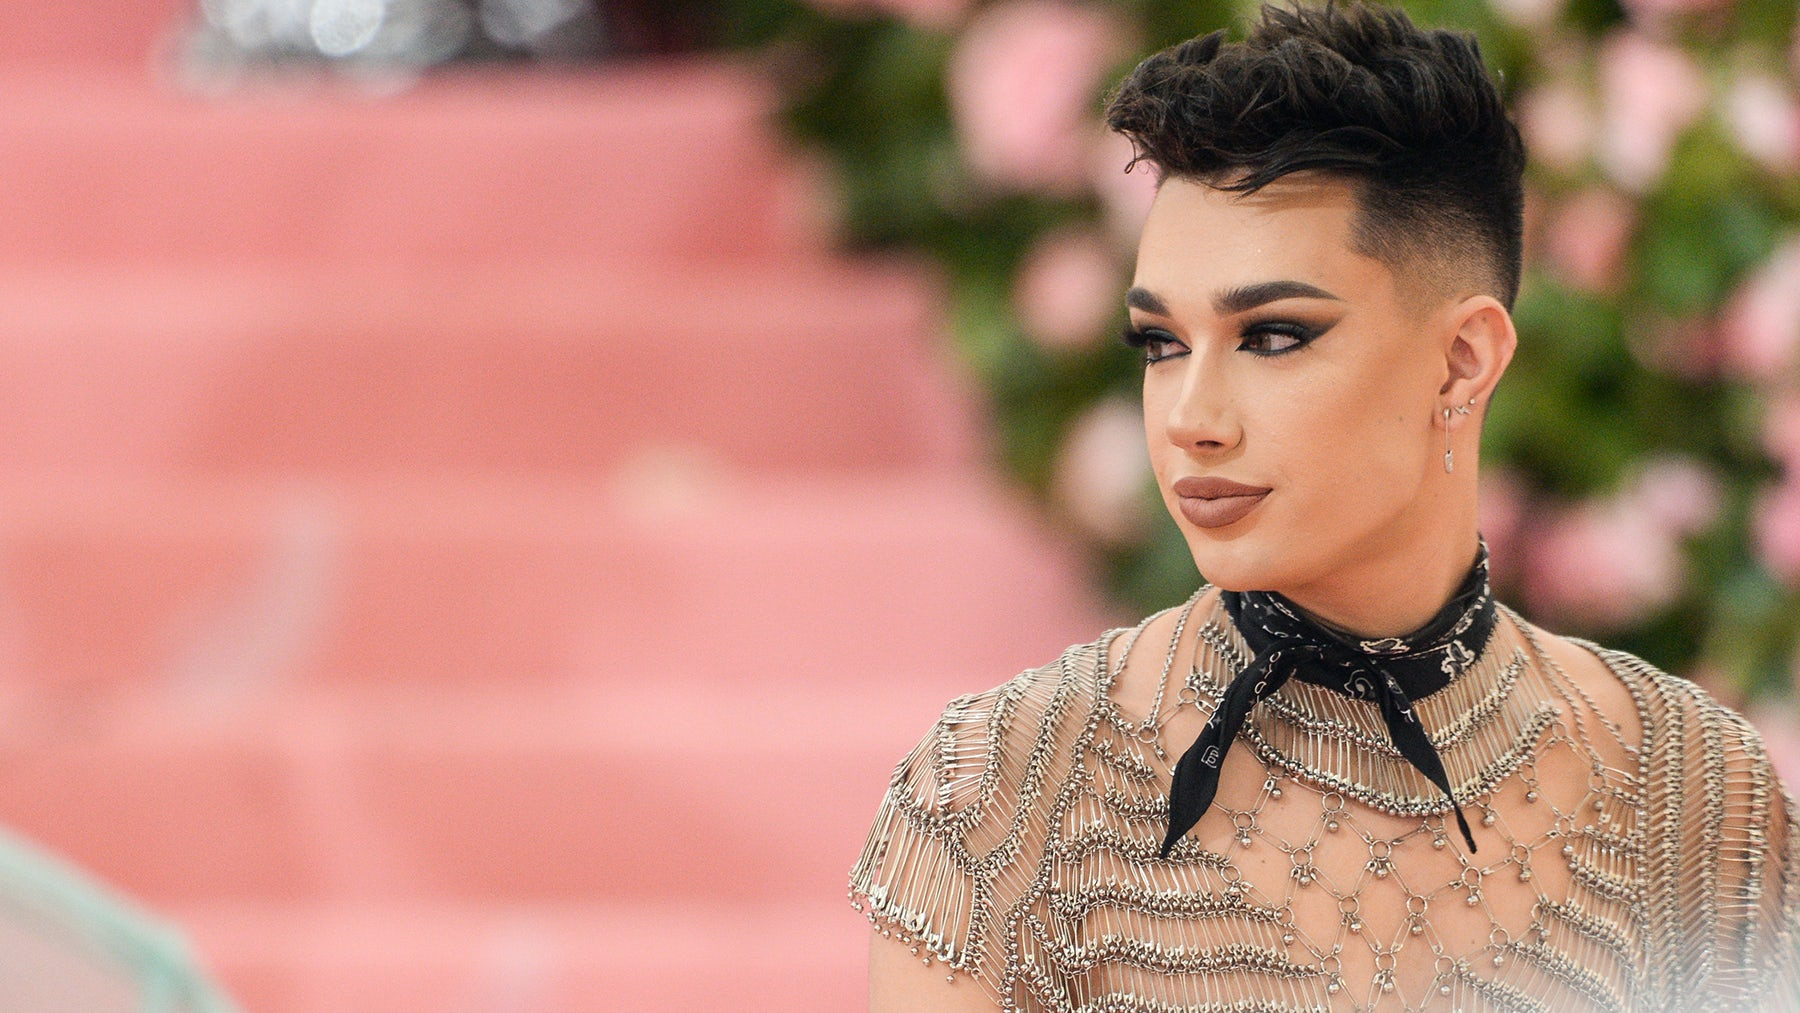 James Charles at the Met Gala | Source: Getty Images